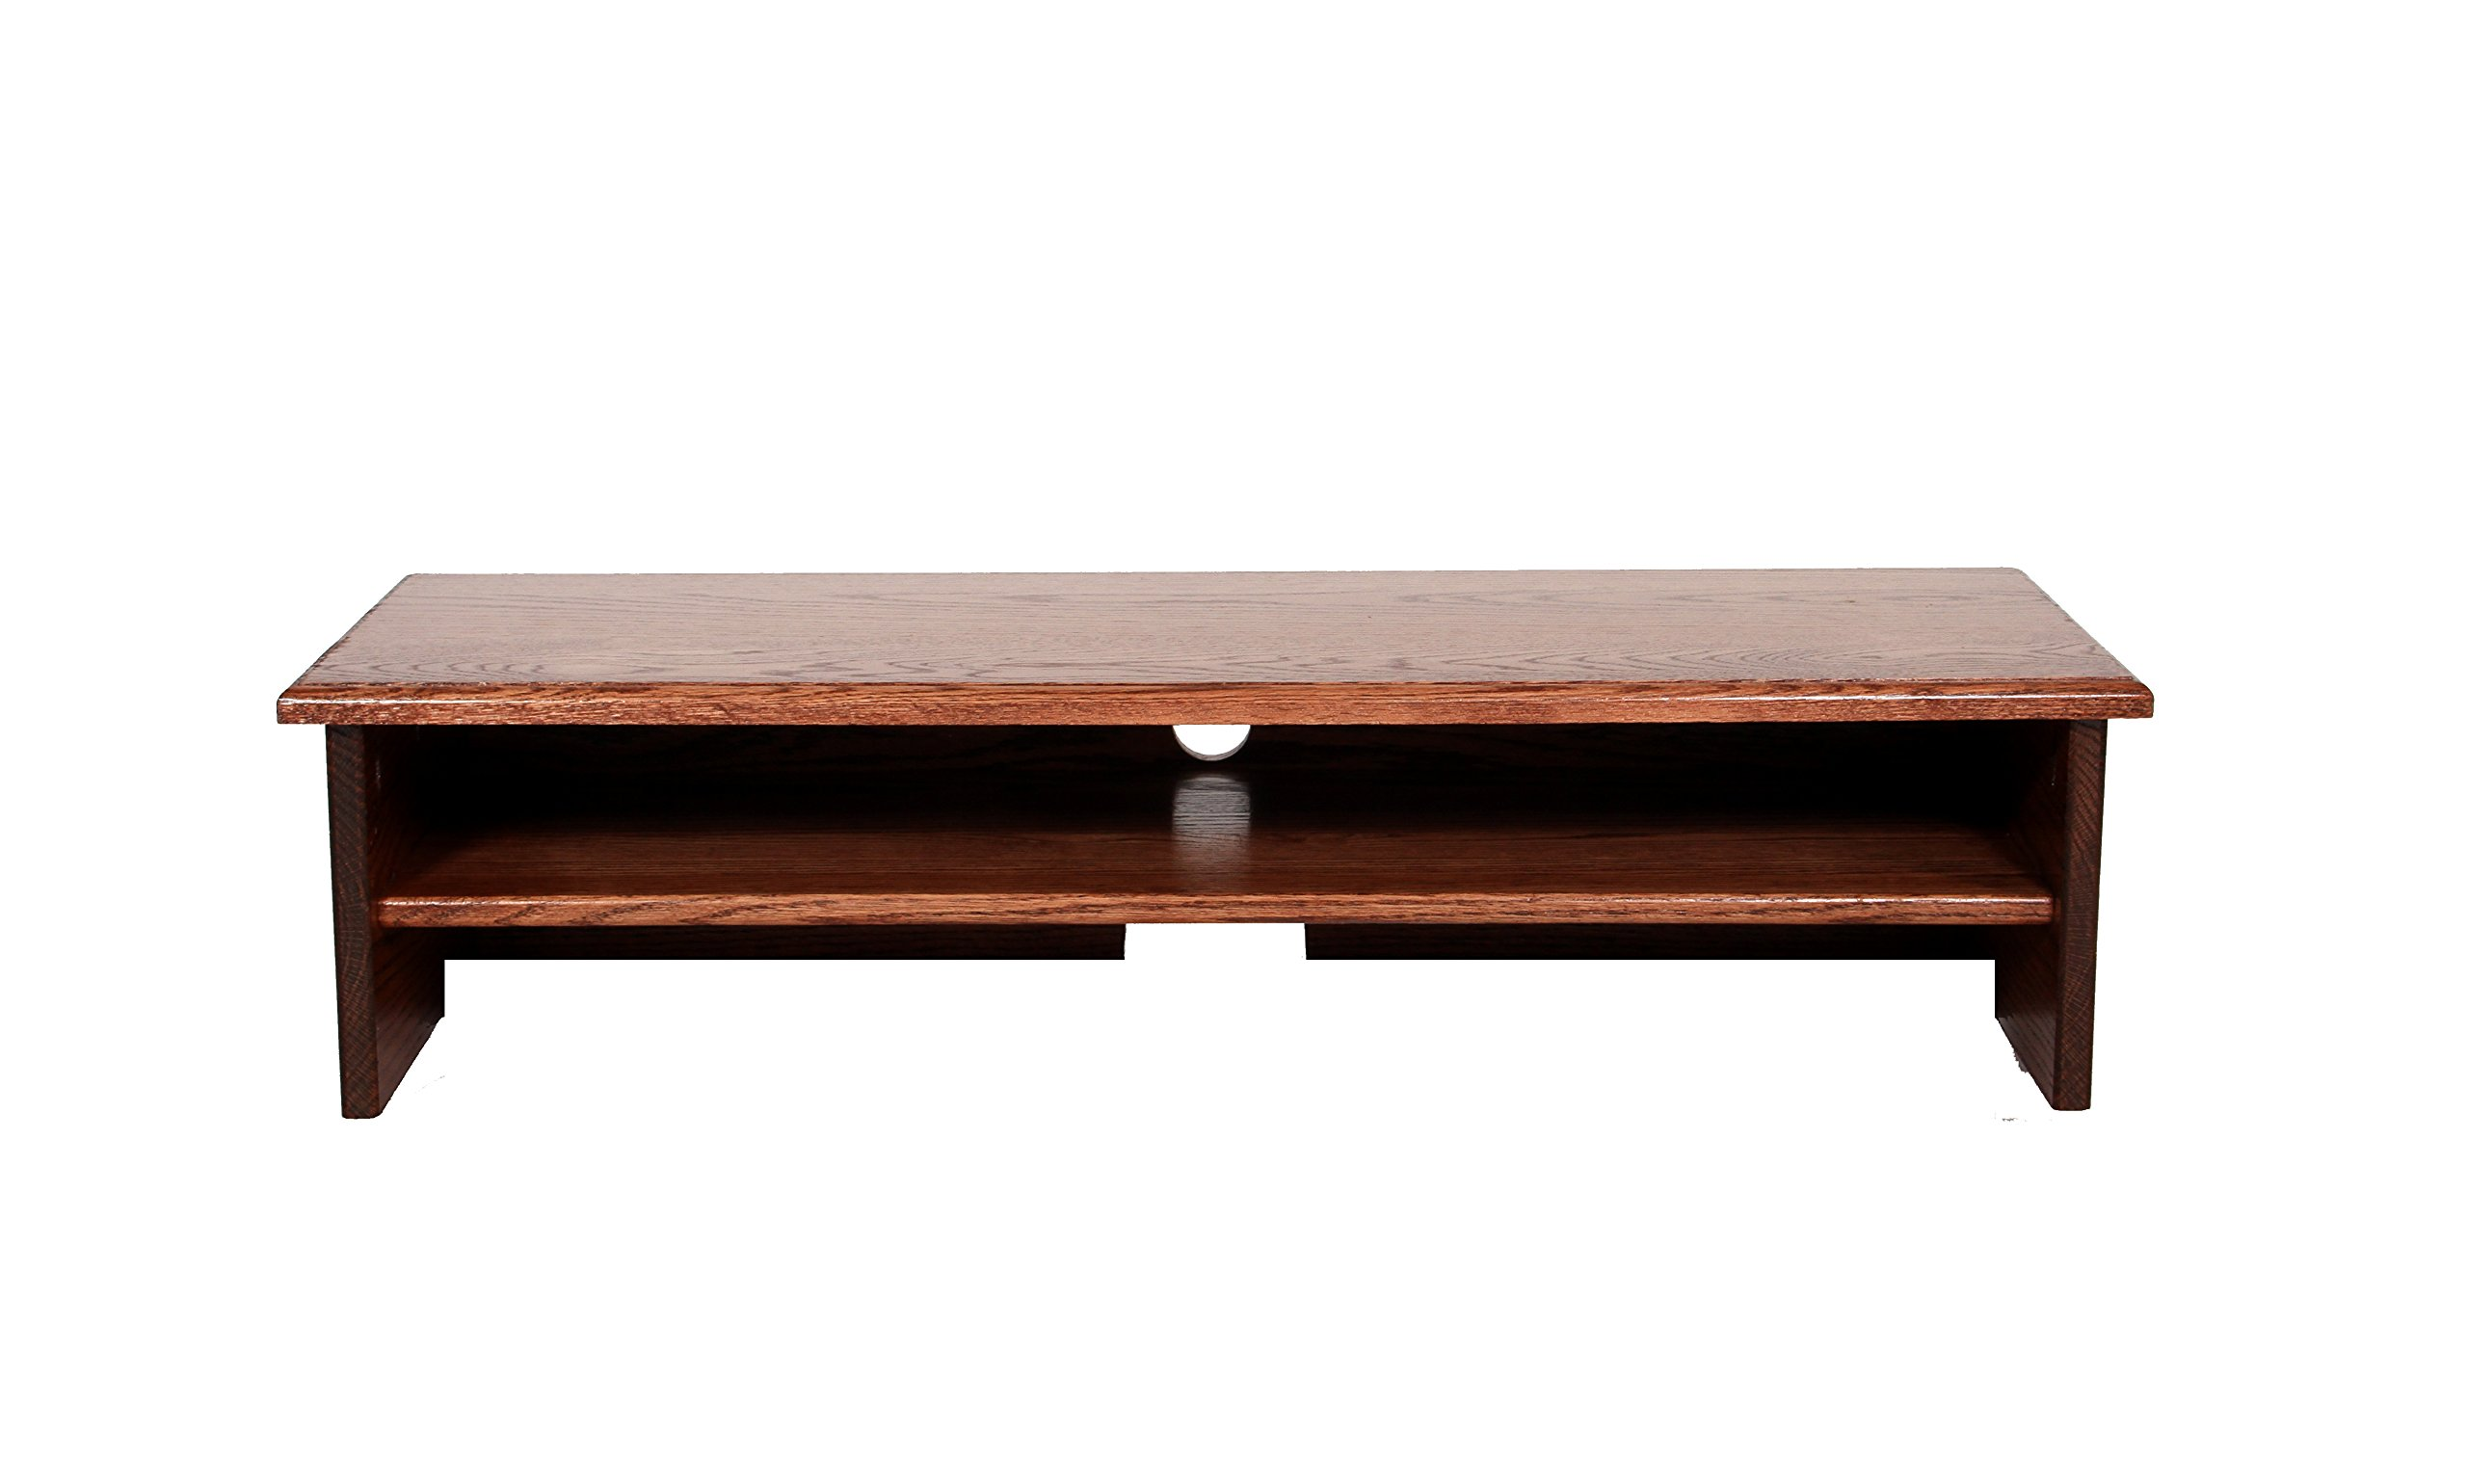 """X-Large Triple Tier TV Riser 36x14x8 3/4"""" high Red Oak Stained Solid Hardwood - solid red oak wood perfect for new flat screen TV 3 1/2"""" IN BETWEEN EACH SHELF - tv-stands, living-room-furniture, living-room - 71a3E5ufJRL -"""